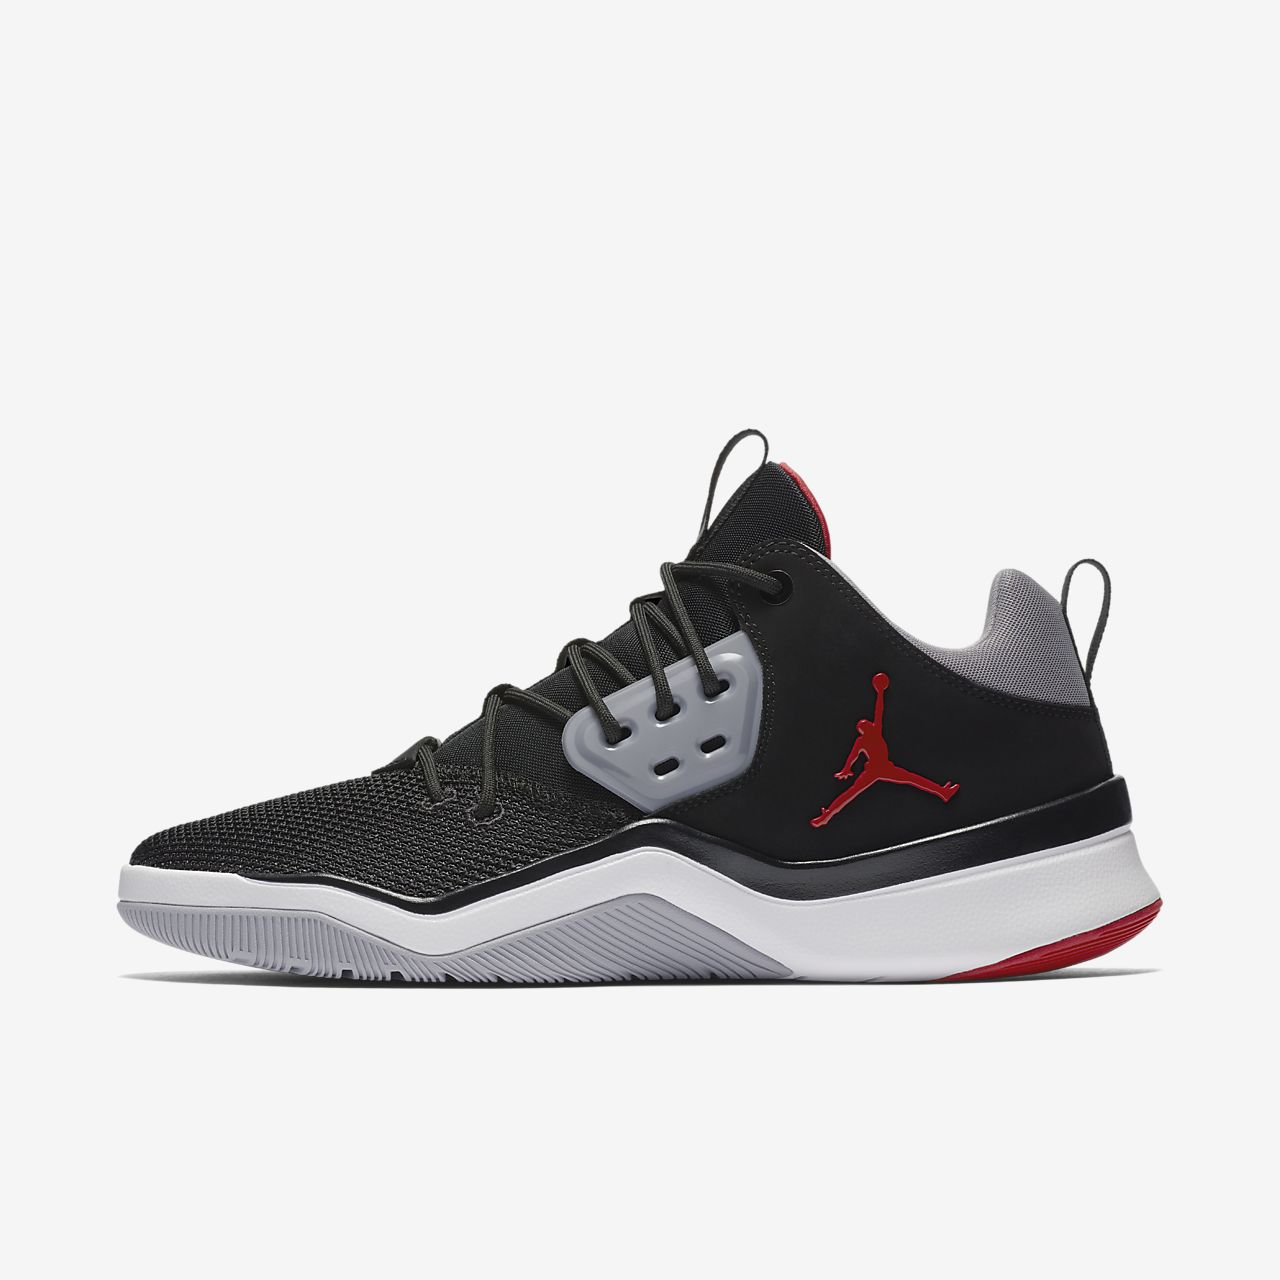 cheap for discount 613f0 5b4c8 ... Chaussure Jordan DNA pour Homme